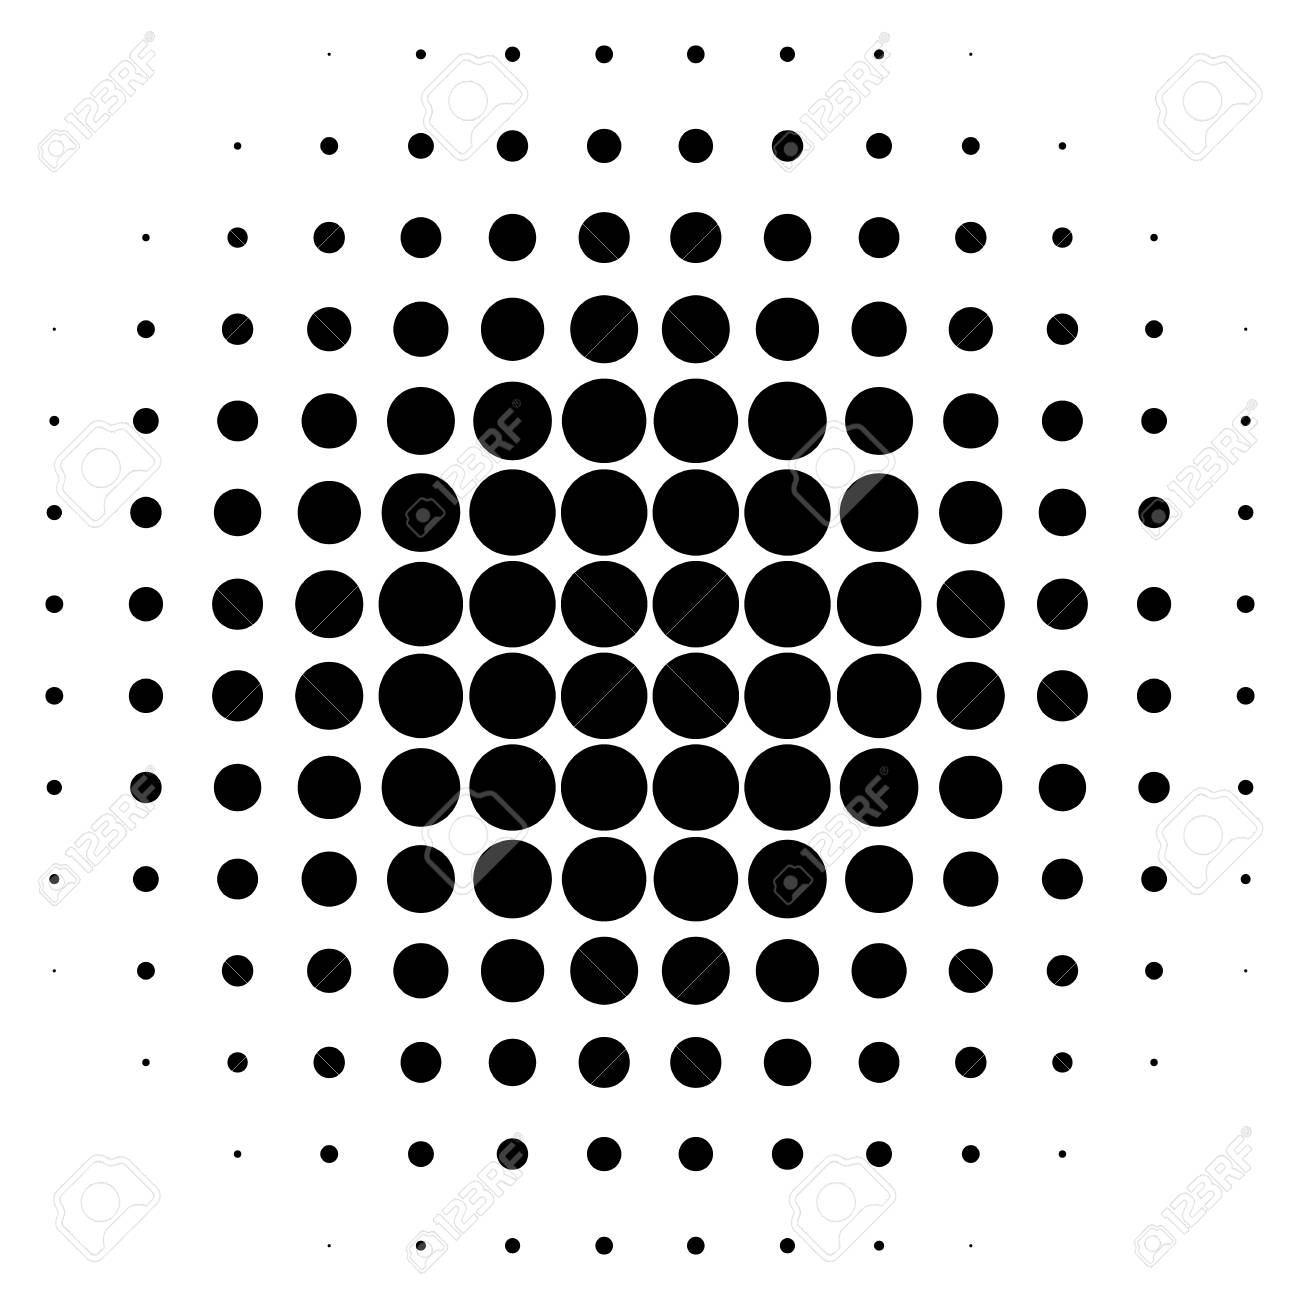 75321718-circle-halftone-element-monochr